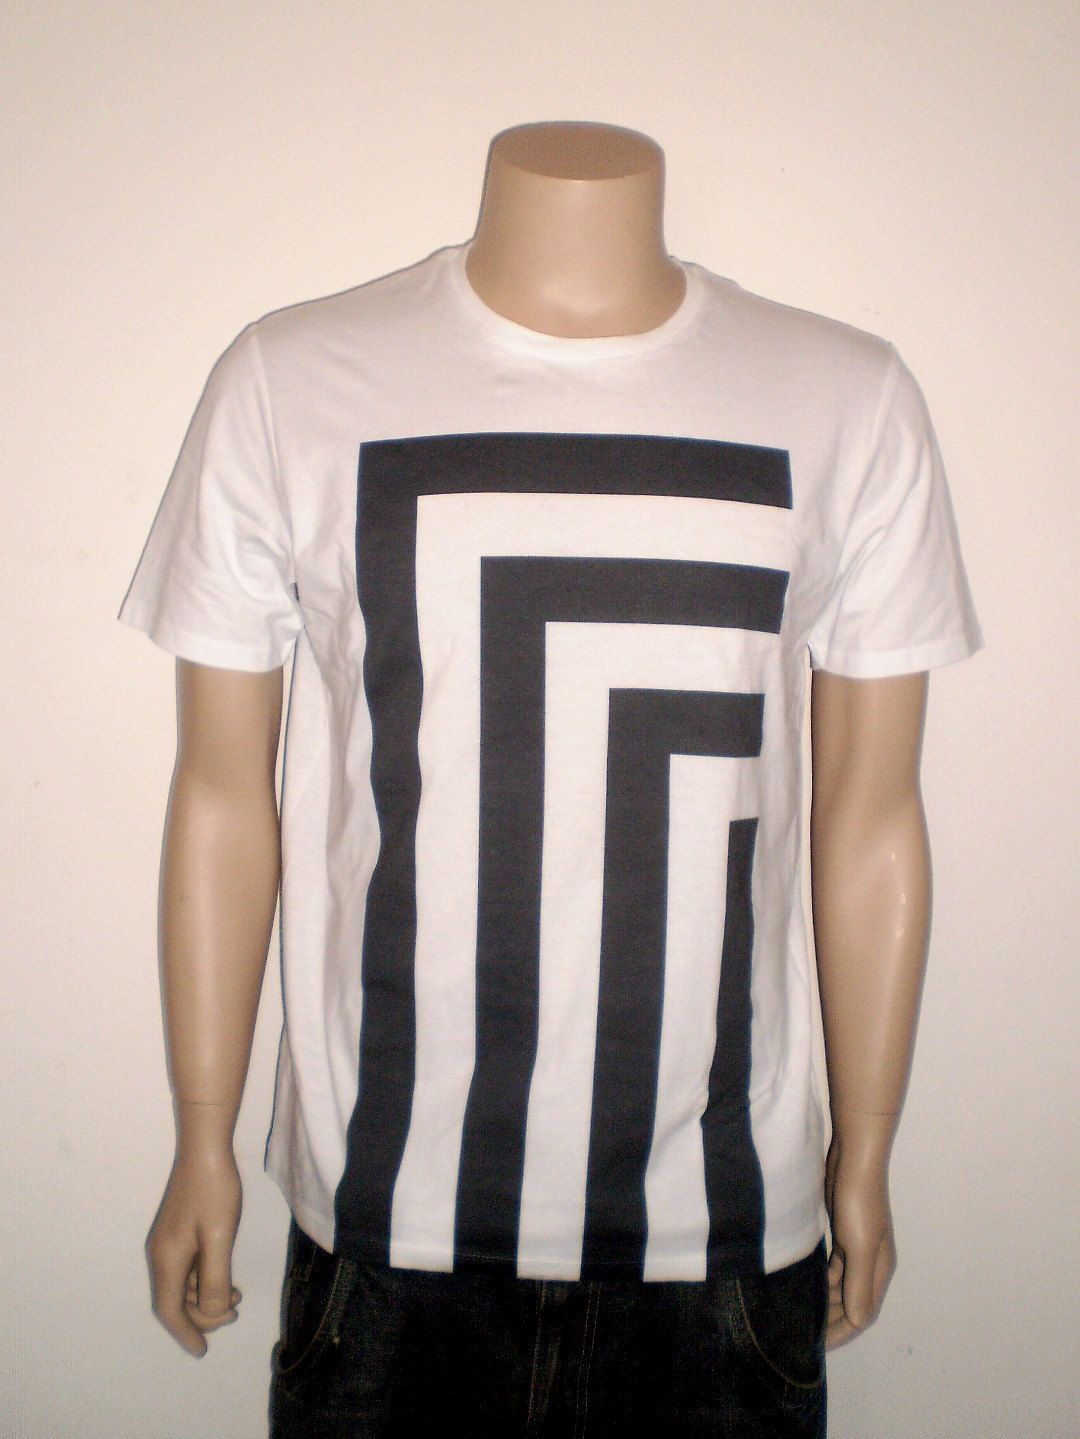 White t shirt effect - Optical Black And White T Shirt For Men Burn Out Effect Tee Abstract